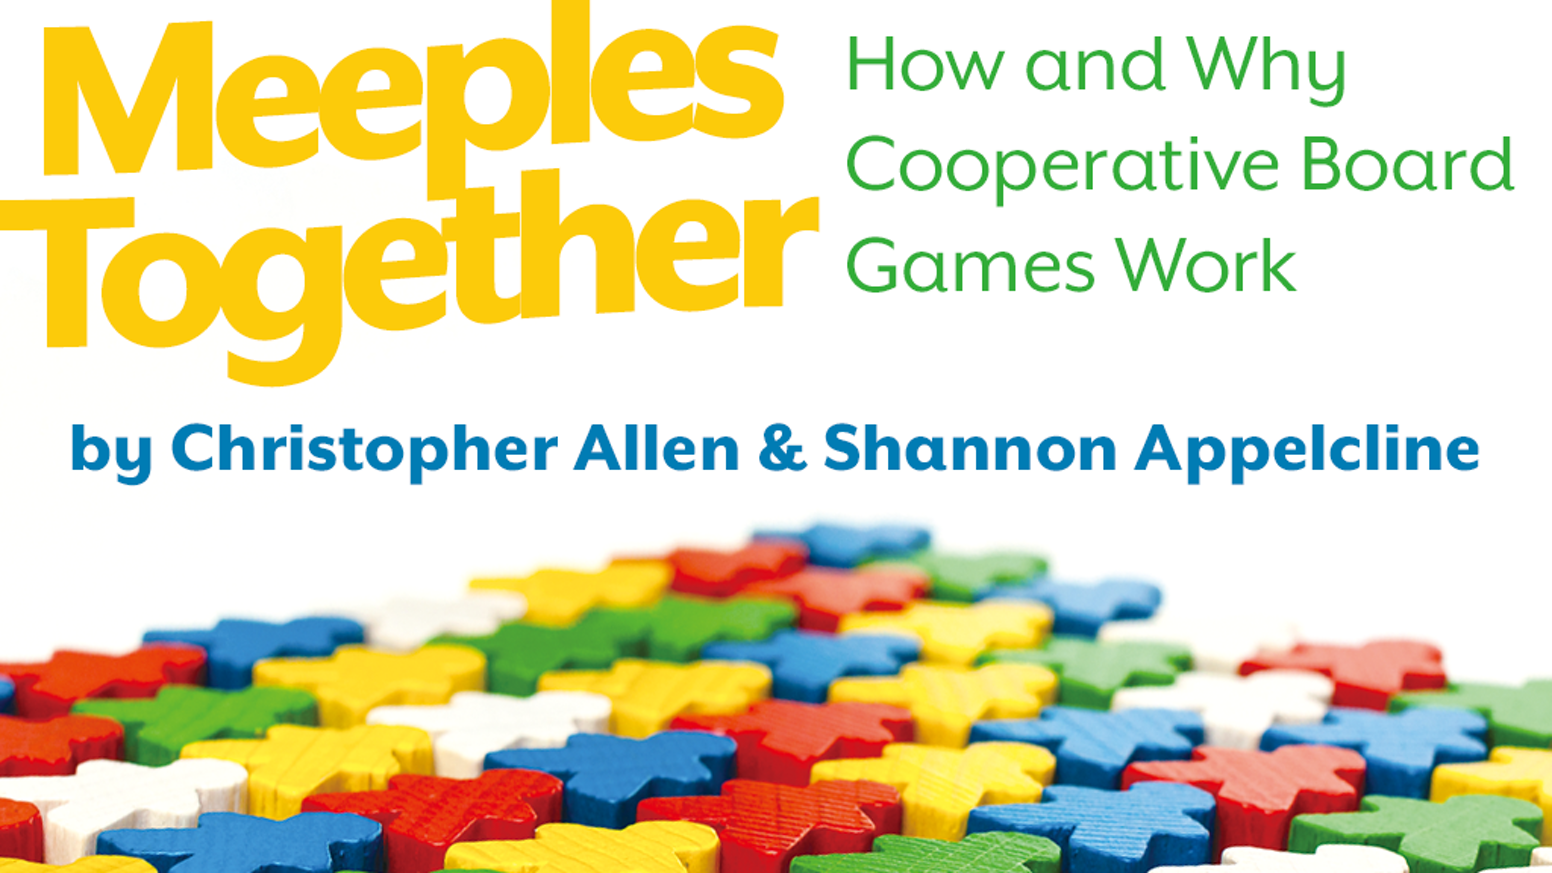 A book for people who play, discuss, critique, design, and love cooperative board games. Pre-orders closed during fulfillment. Digital editions on public sale on March 5, and the street date for physical editions (outside backer stores) is May 1.